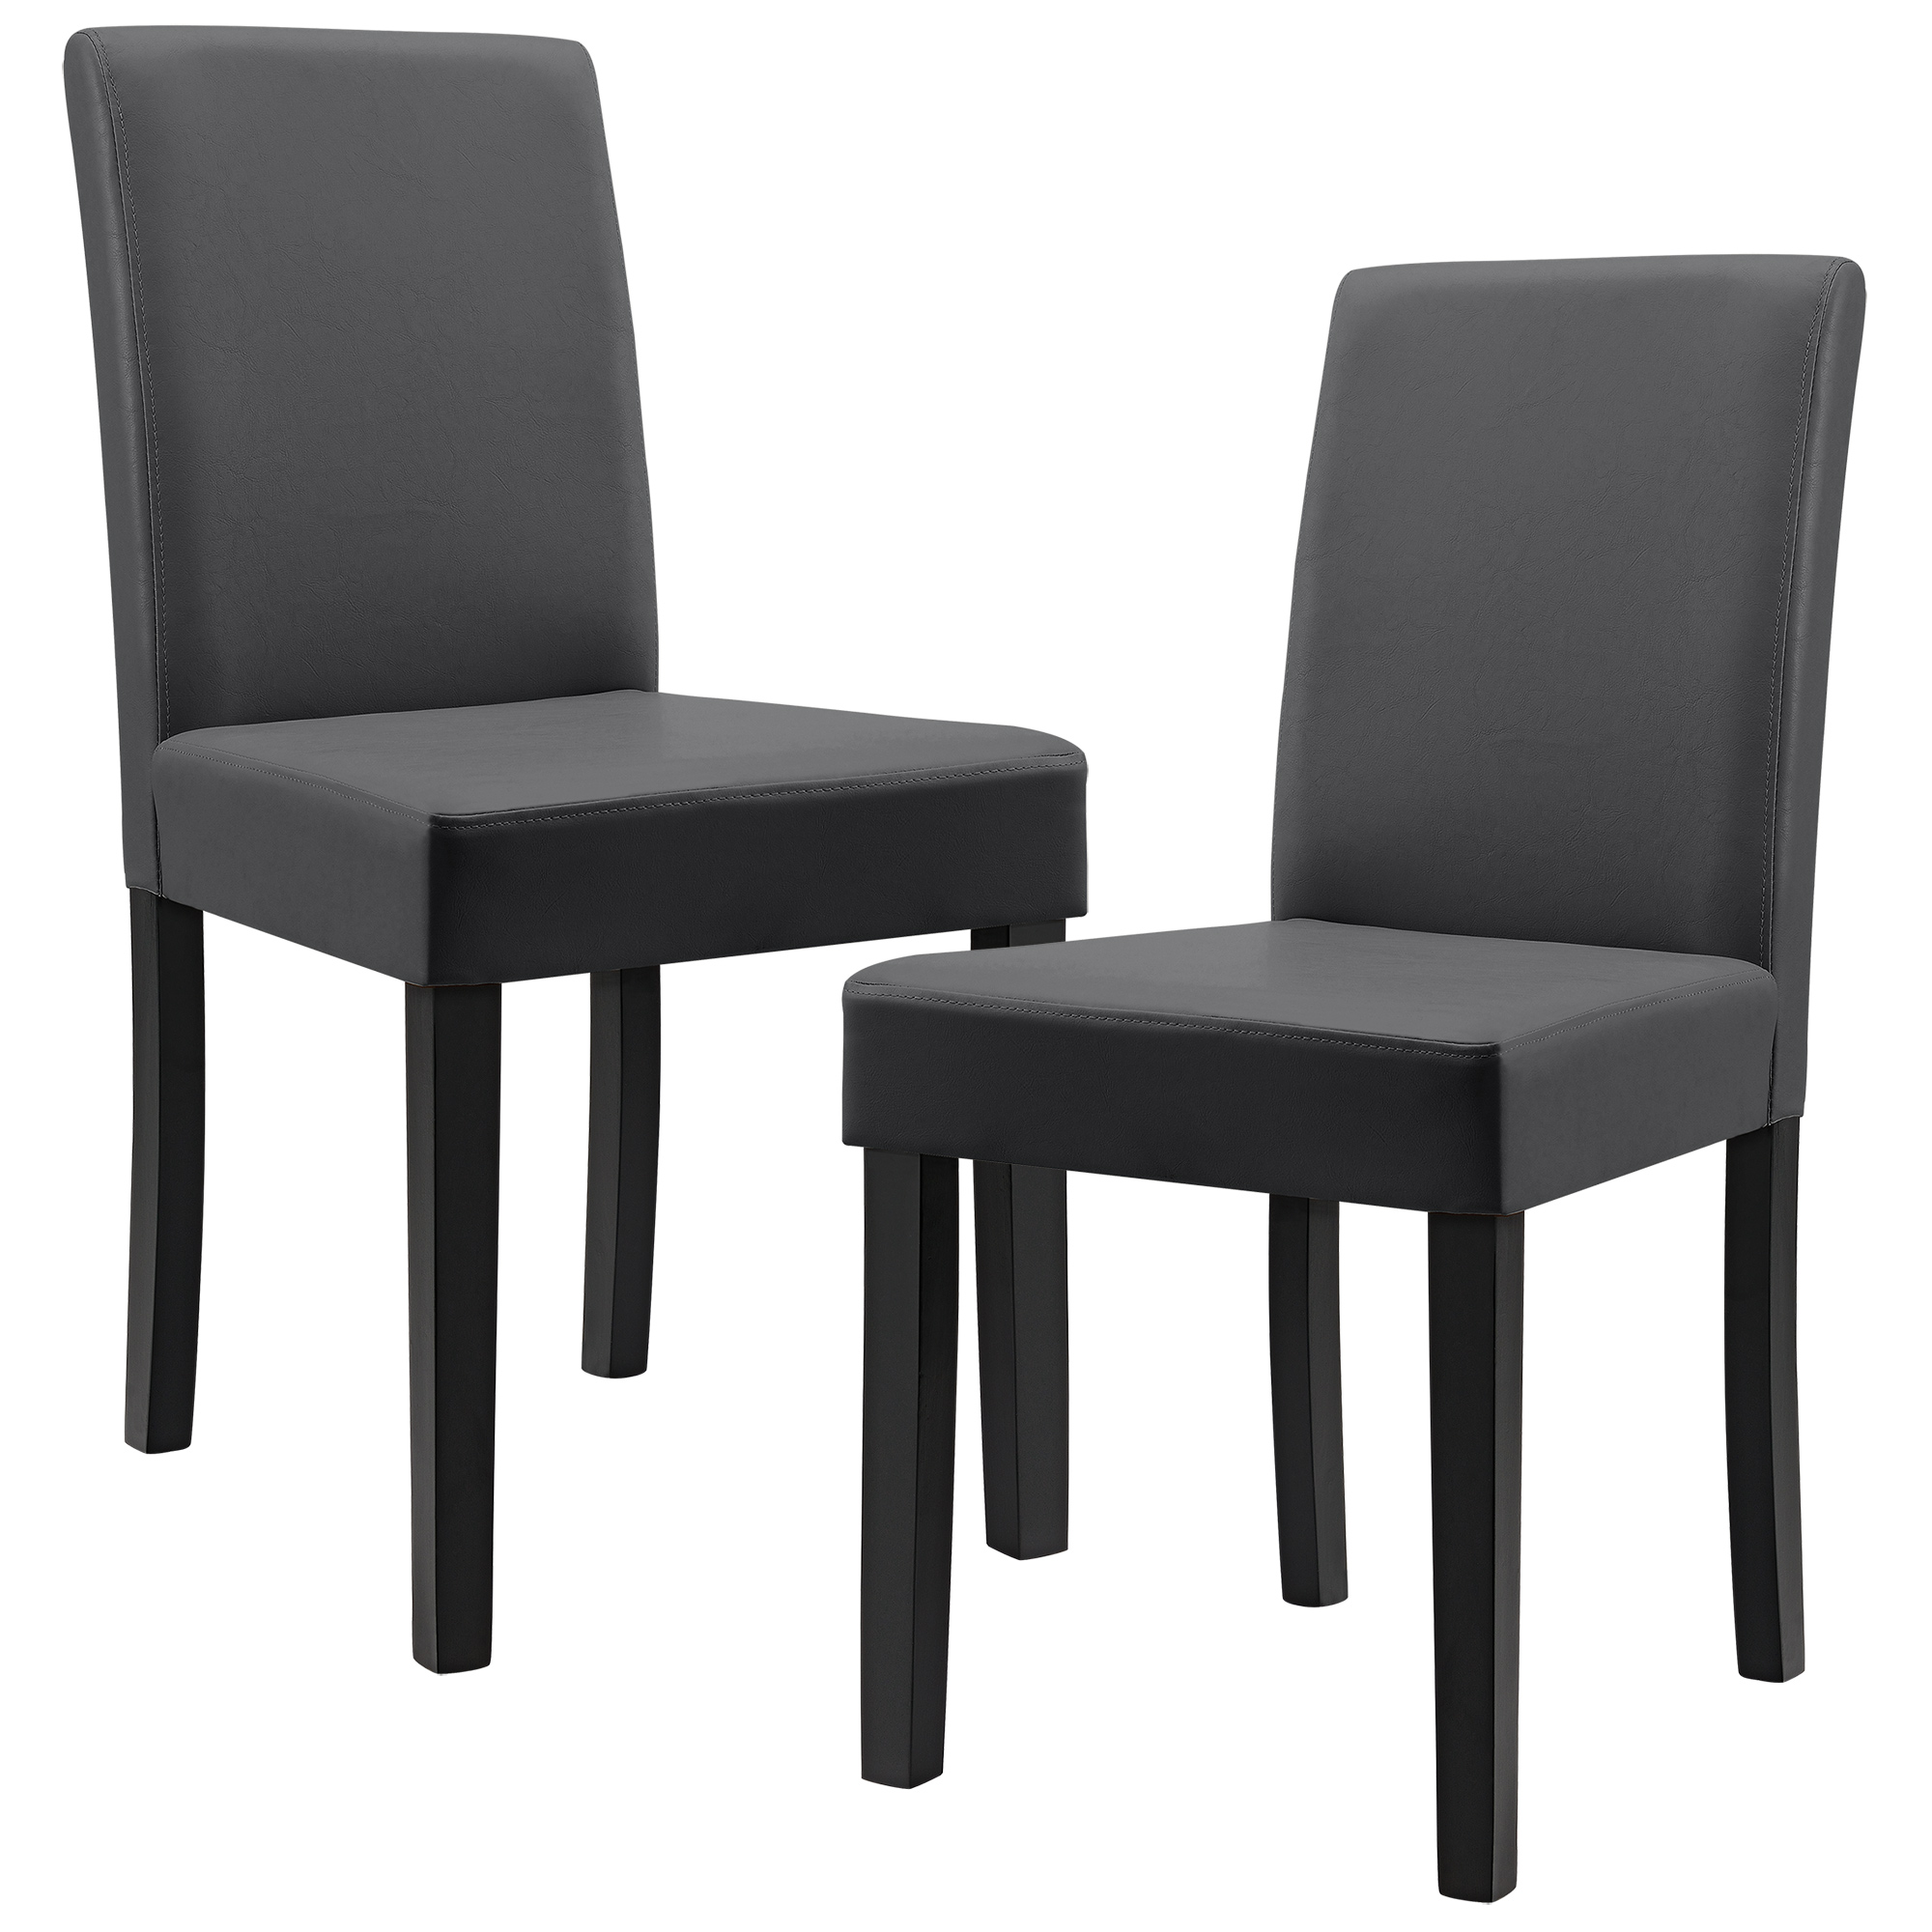 2x esszimmer st hle kunst leder polster stuhl hochlehner w hlbar ebay. Black Bedroom Furniture Sets. Home Design Ideas